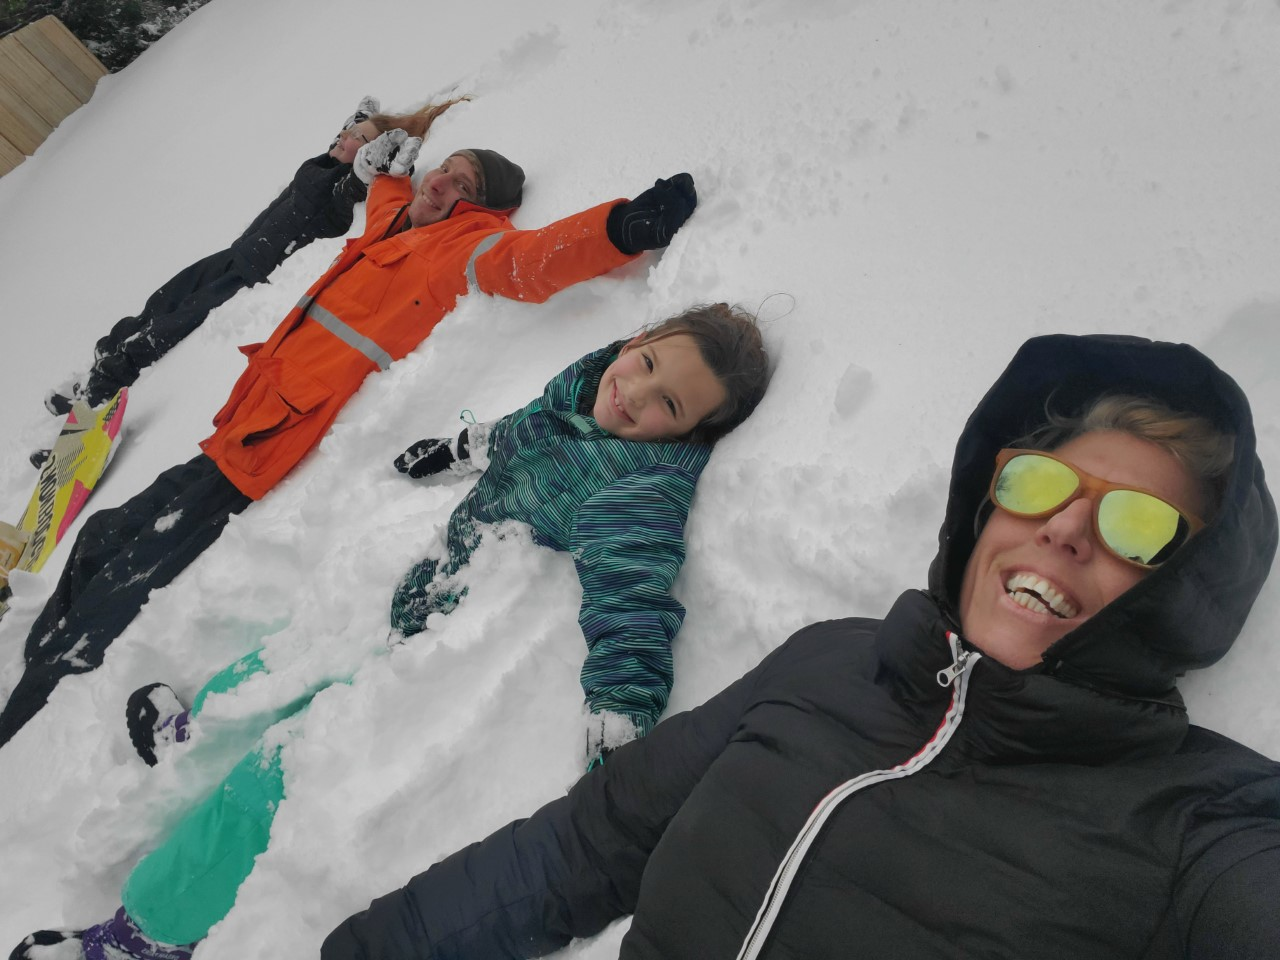 three kids and one adult on the ground in the snow